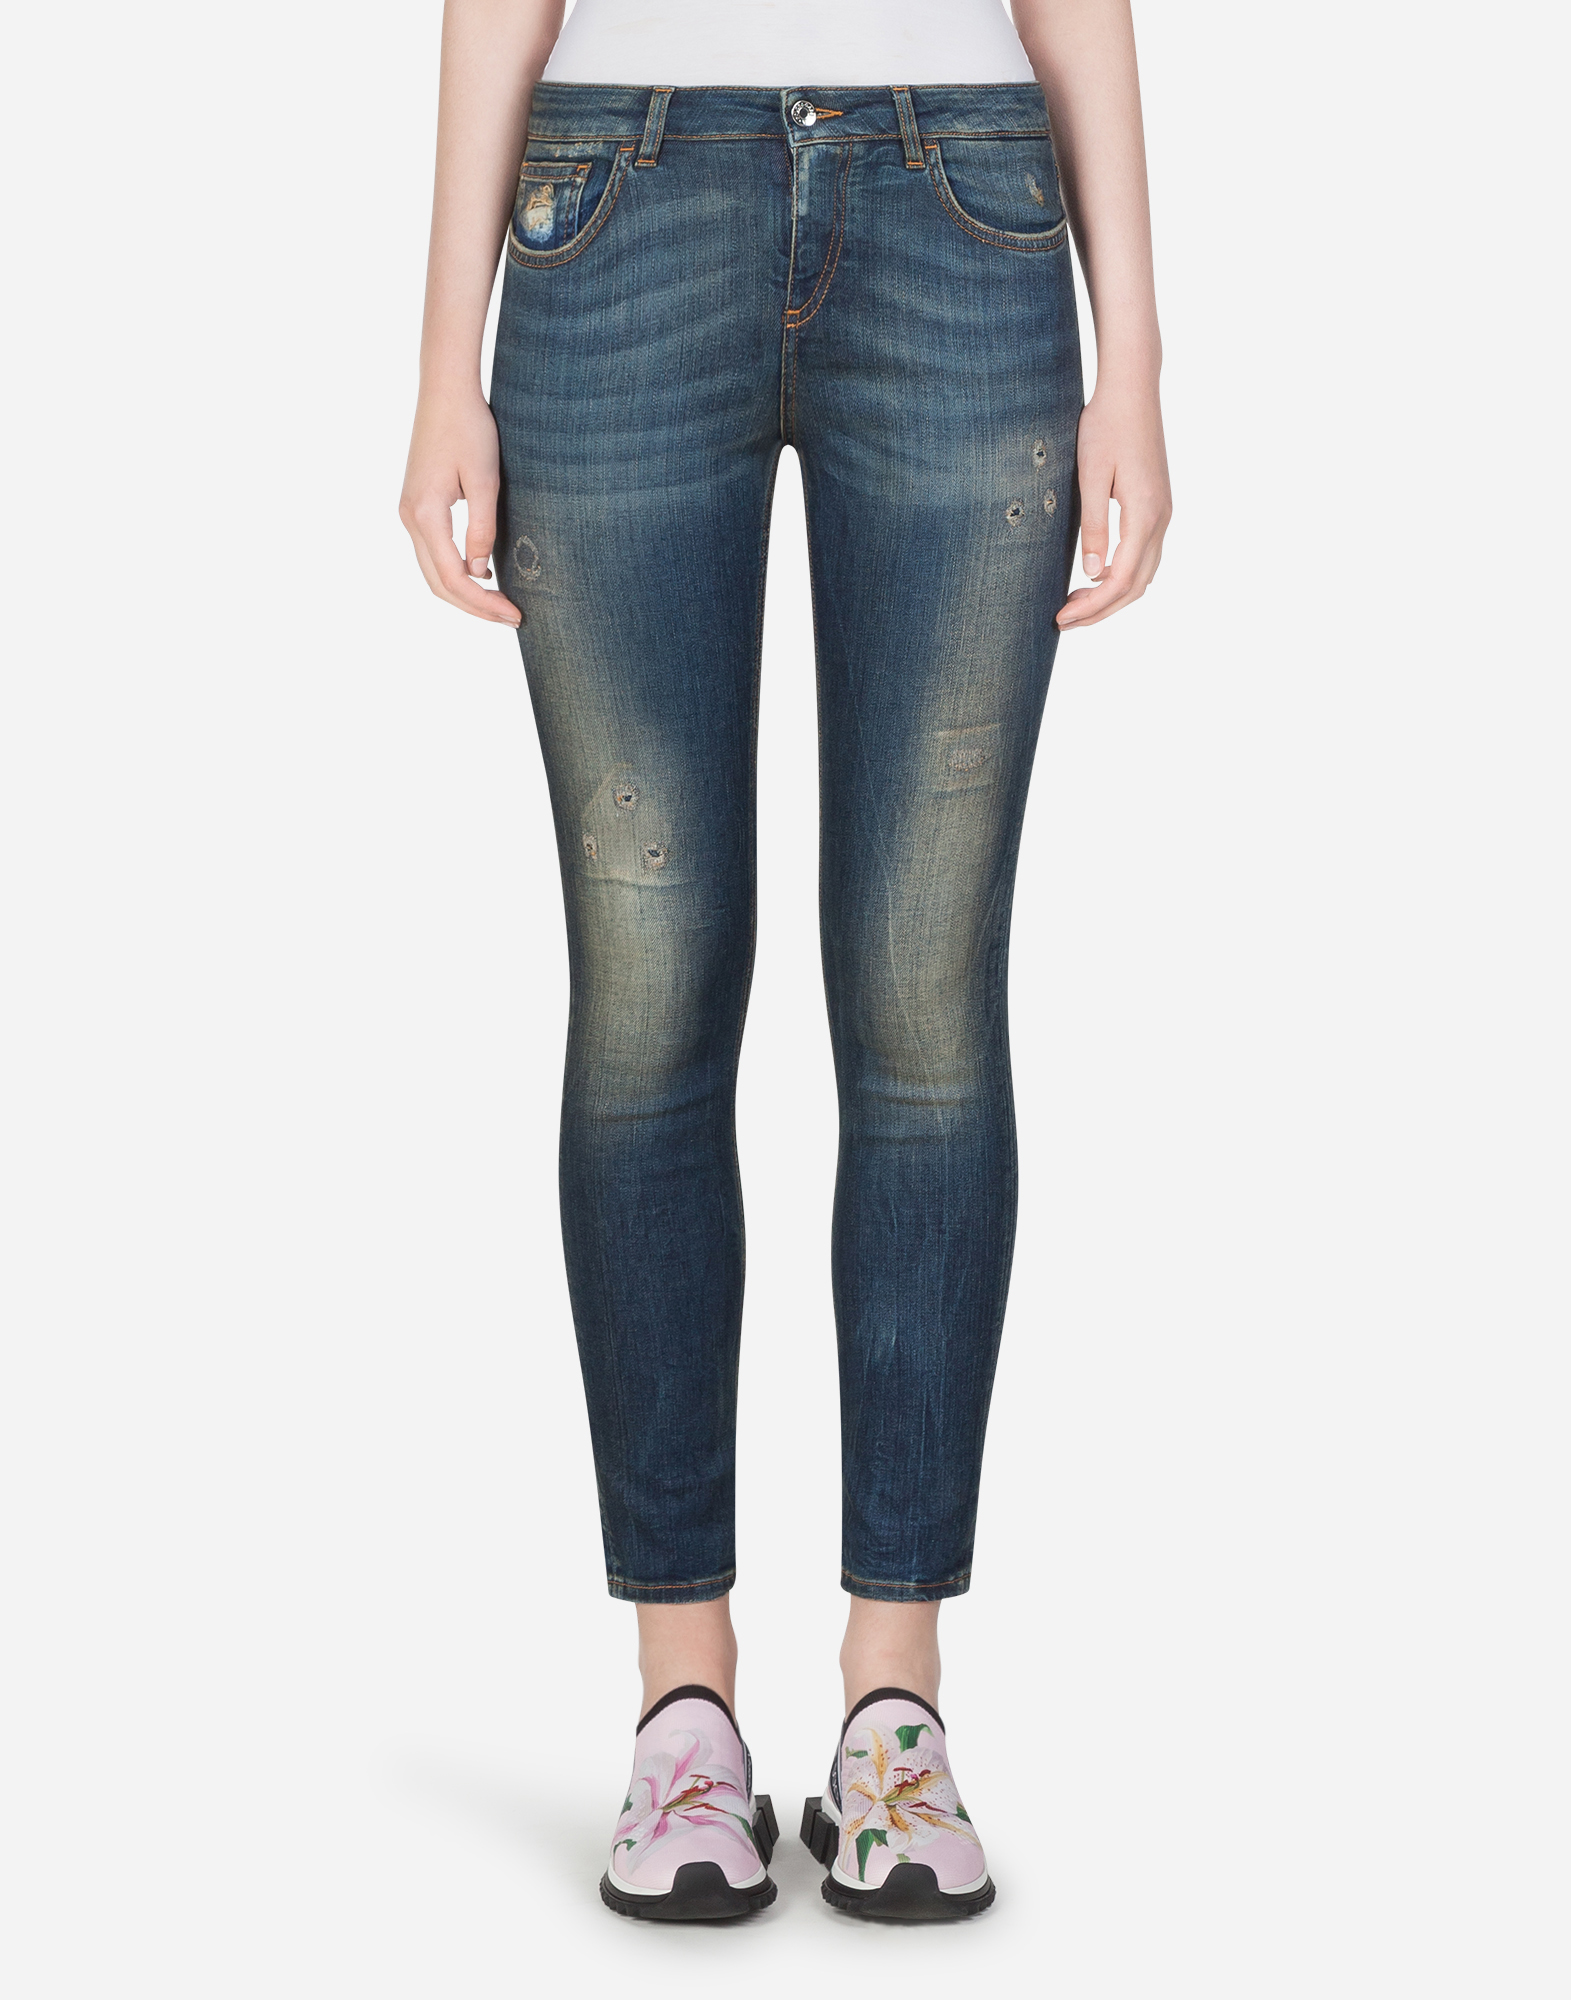 Dolce & Gabbana DENIM STRETCH FIT PRETTY JEANS